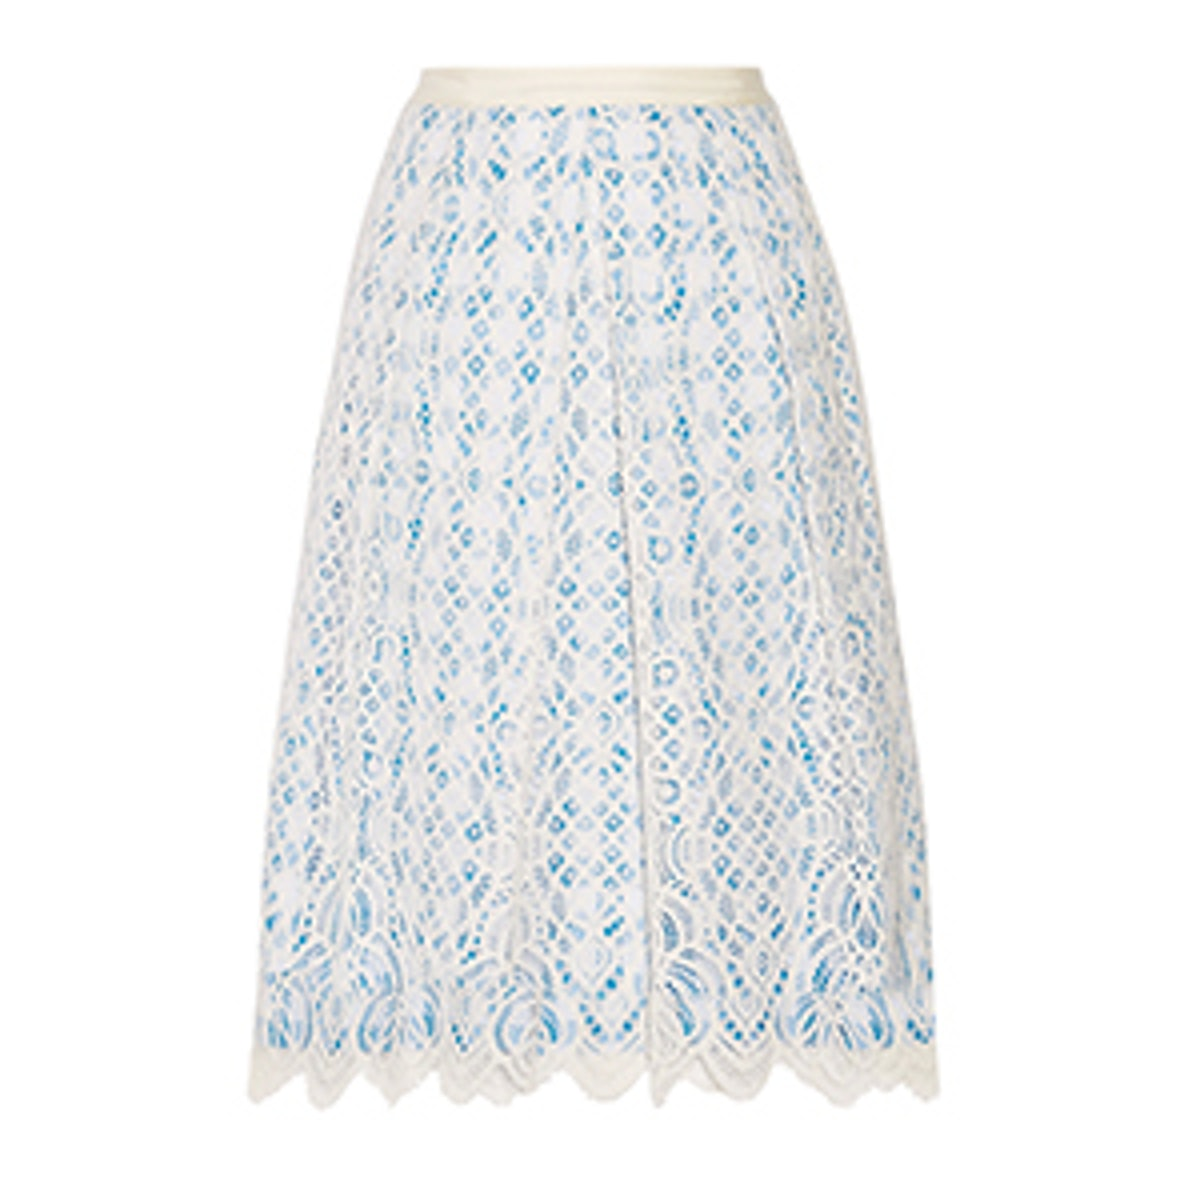 Lakeville Lace And Gingham Cotton-Blend Skirt